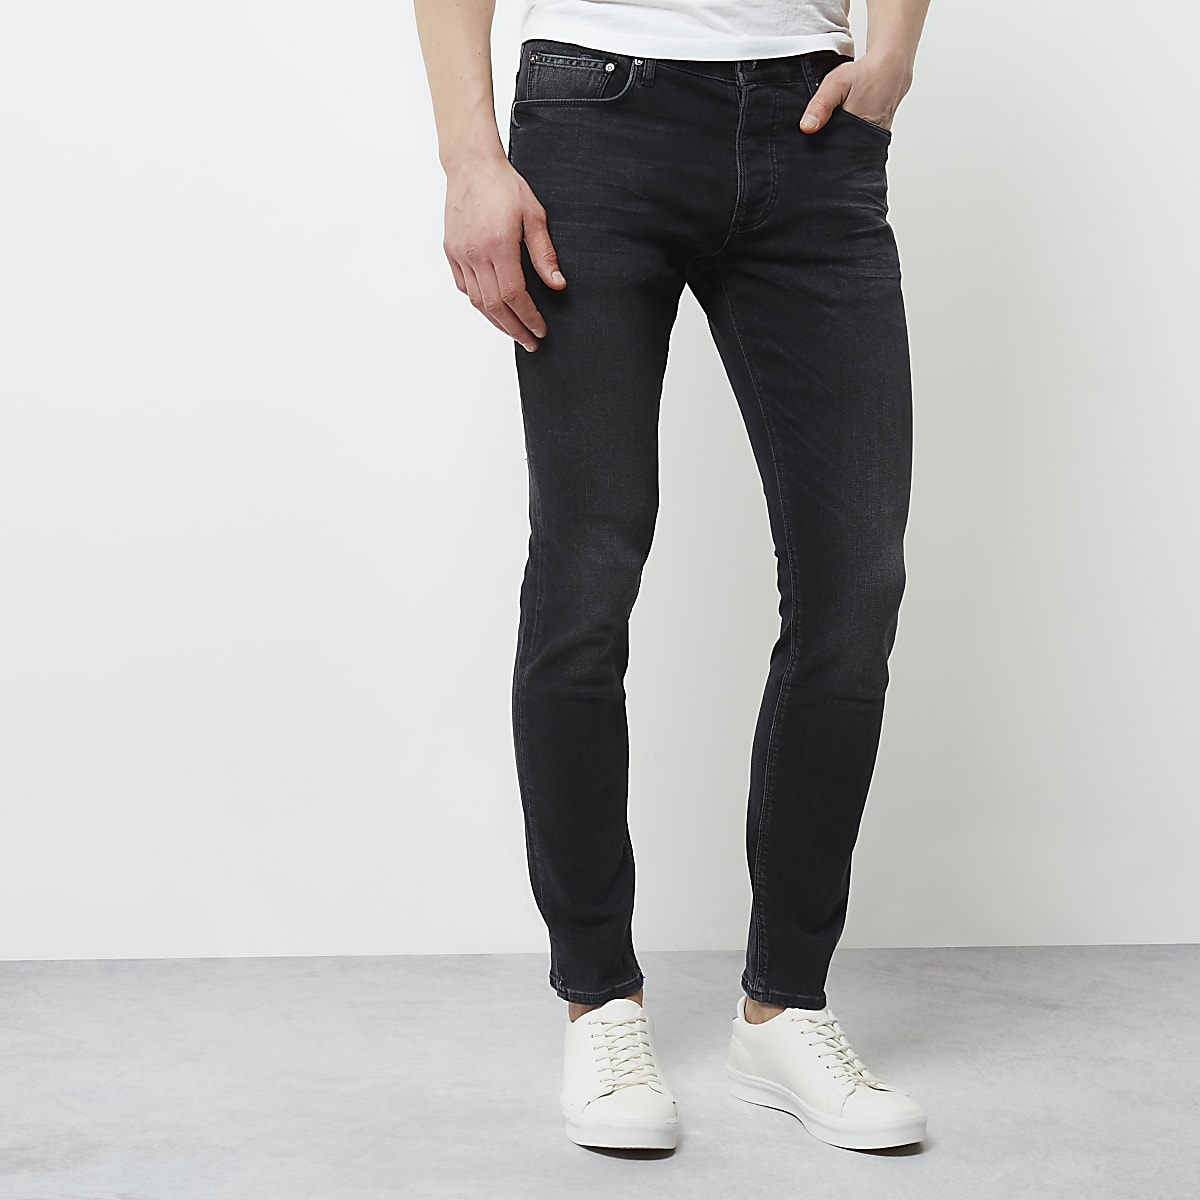 82a2c3b4 Black faded skinny fit Sid jeans - Skinny Jeans - Jeans - men